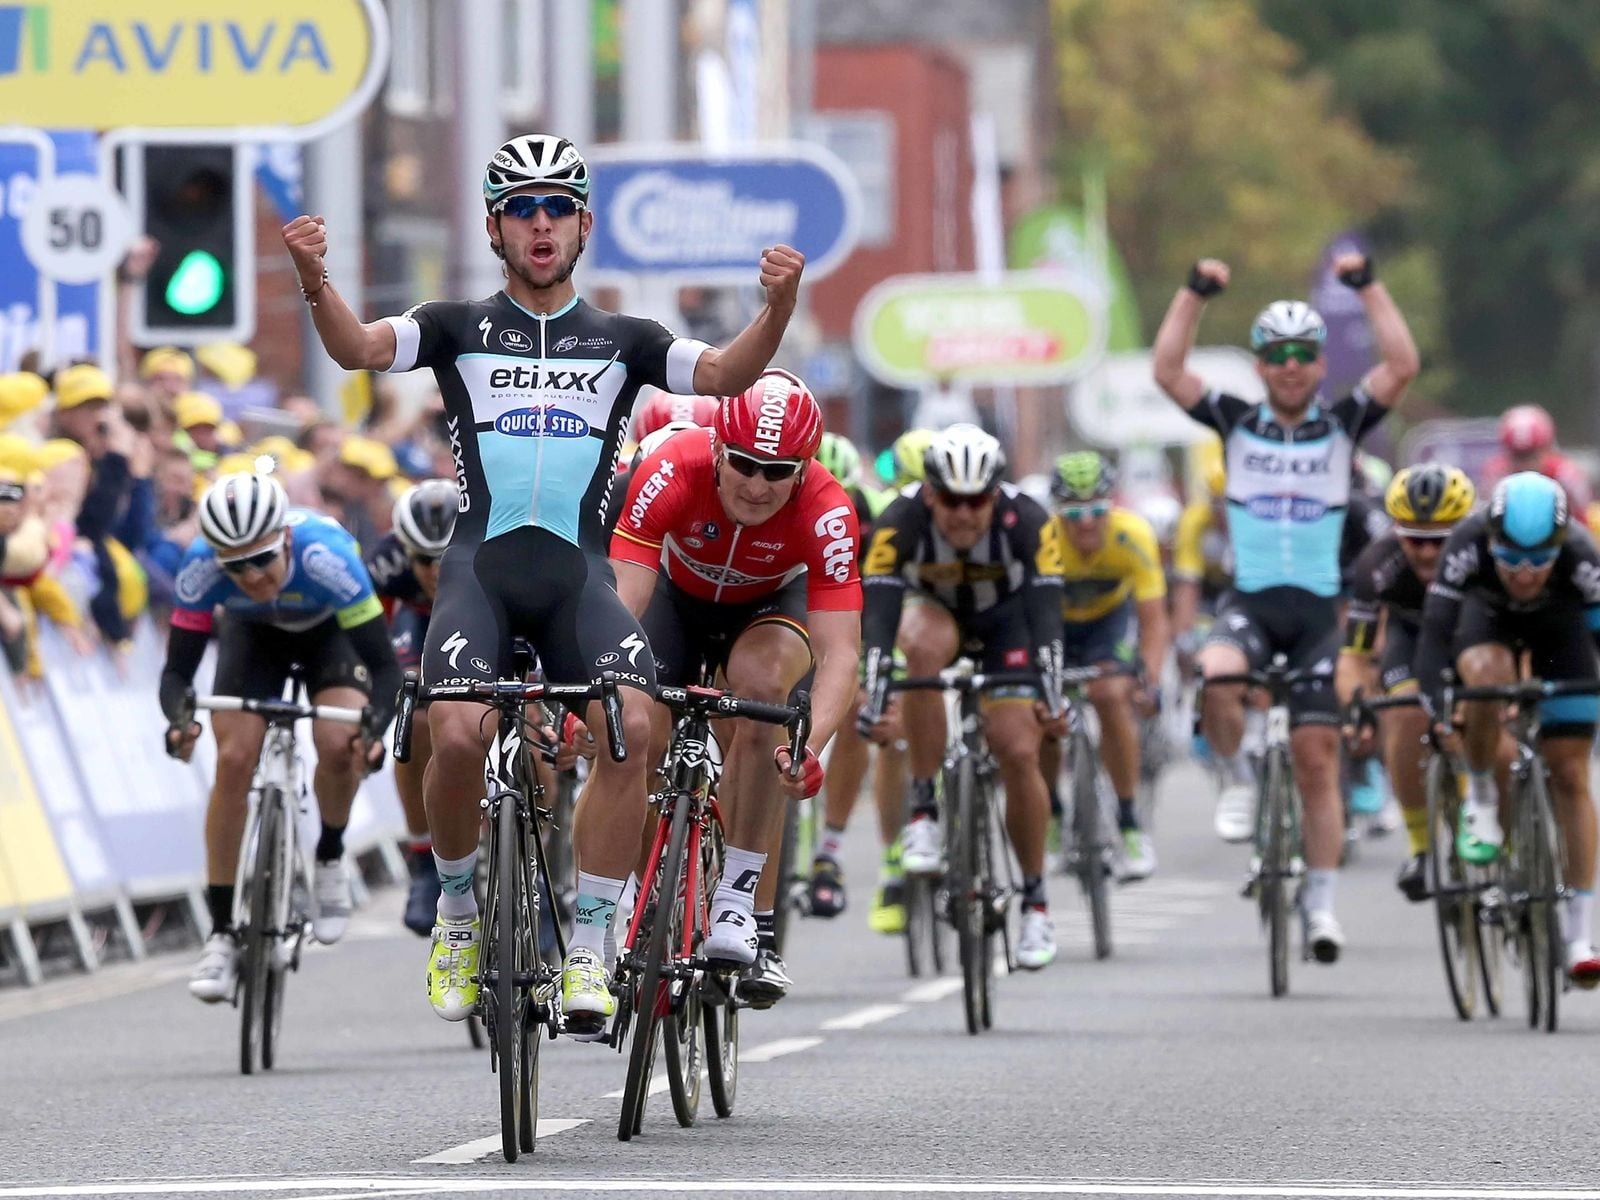 Tour of Britain, 2015, racing as a  stagiaire  . (Photo: Etixx-Quick Step)